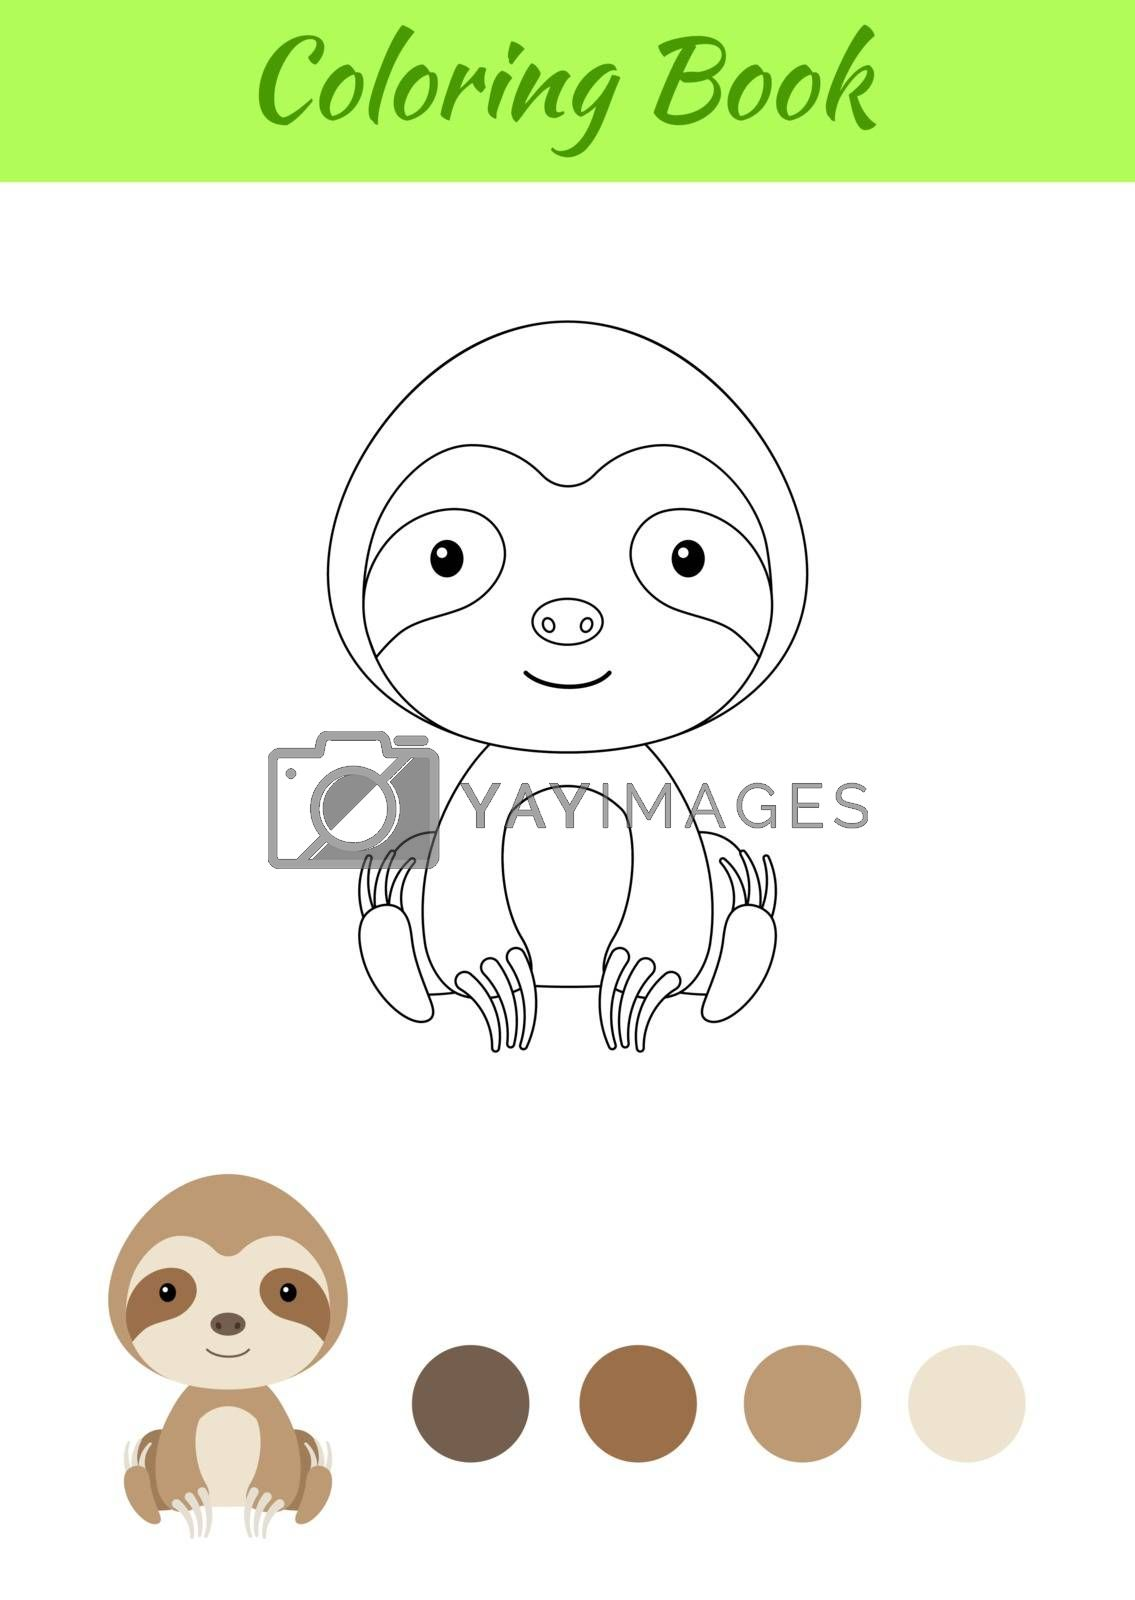 Coloring page little sitting baby sloth. Coloring book for kids. Educational activity for preschool years kids and toddlers with cute animal. Flat cartoon colorful vector stock illustration.